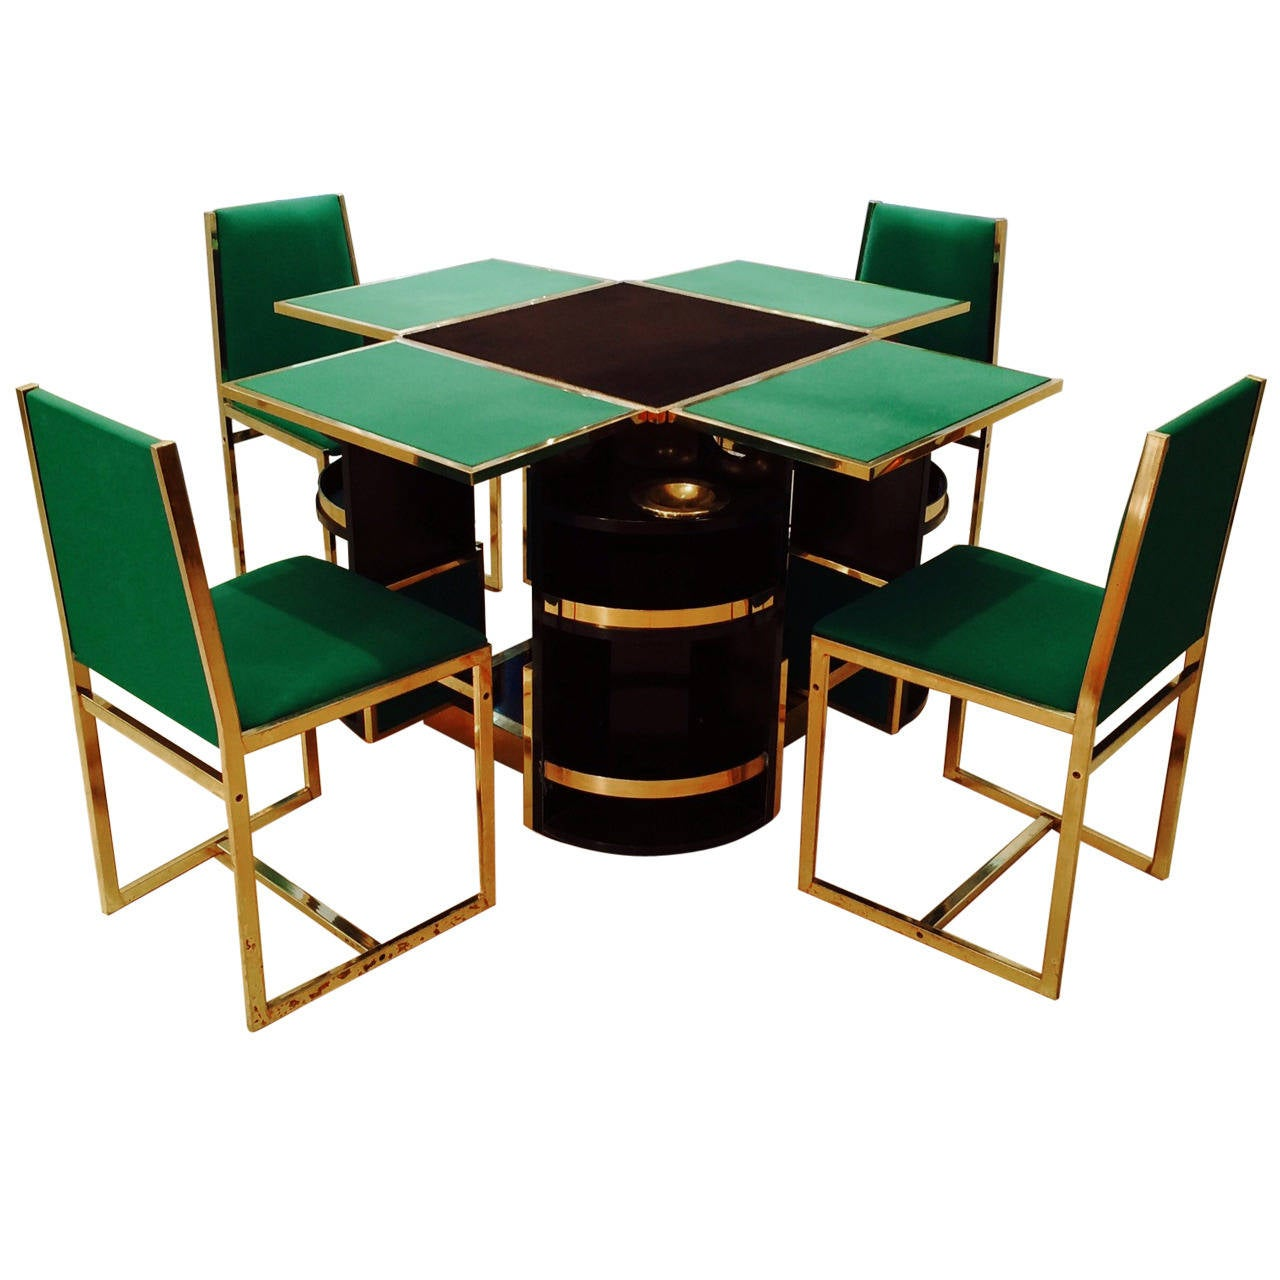 Rare 1970s game table and four chairs signed moneybello at for Contemporary game table and chairs